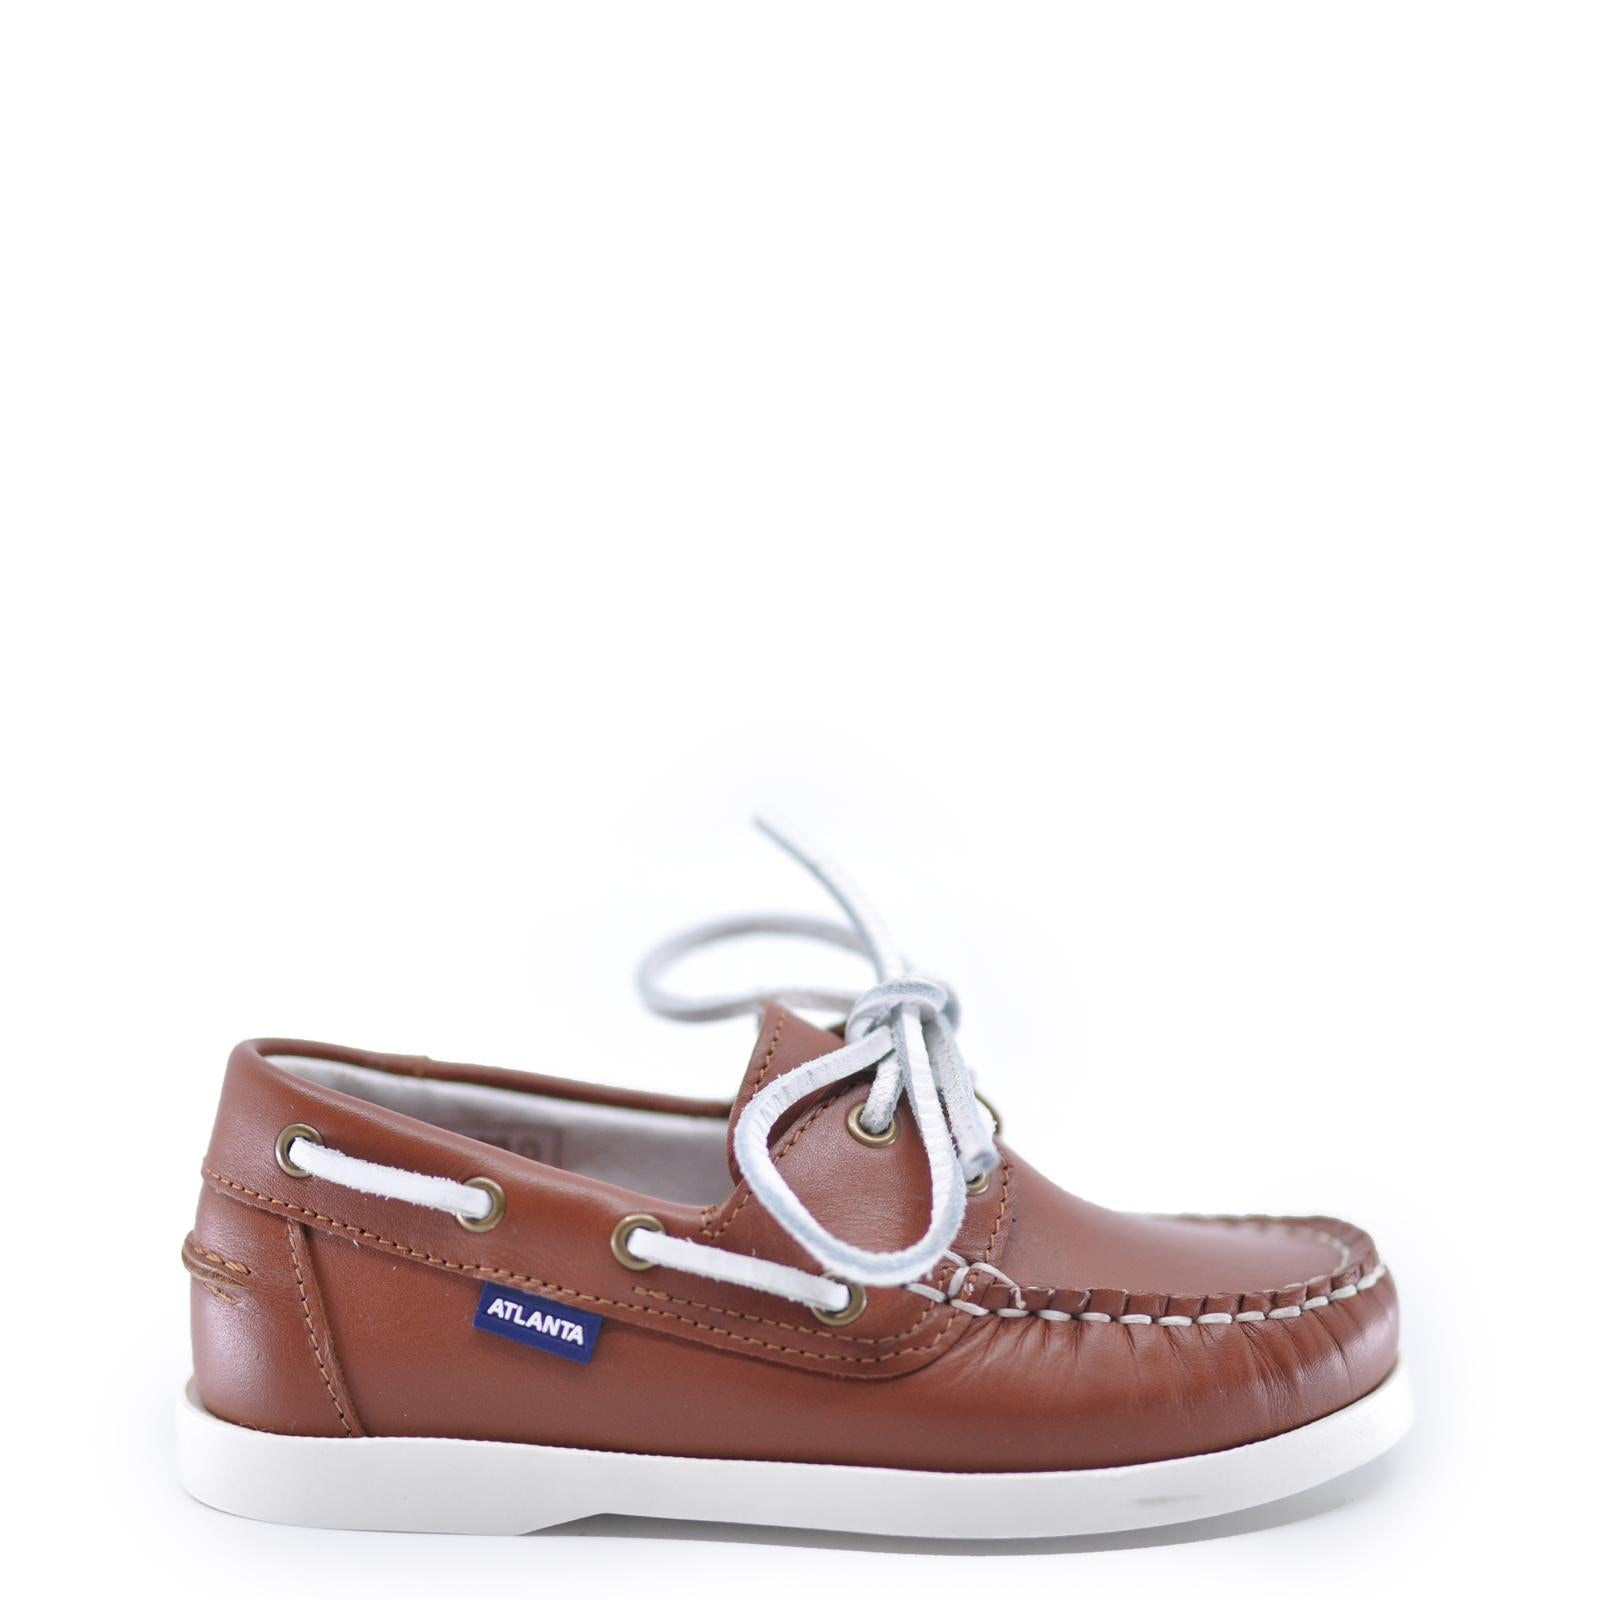 Atlanta Mocassin Brown Boat Shoe-Tassel Children Shoes